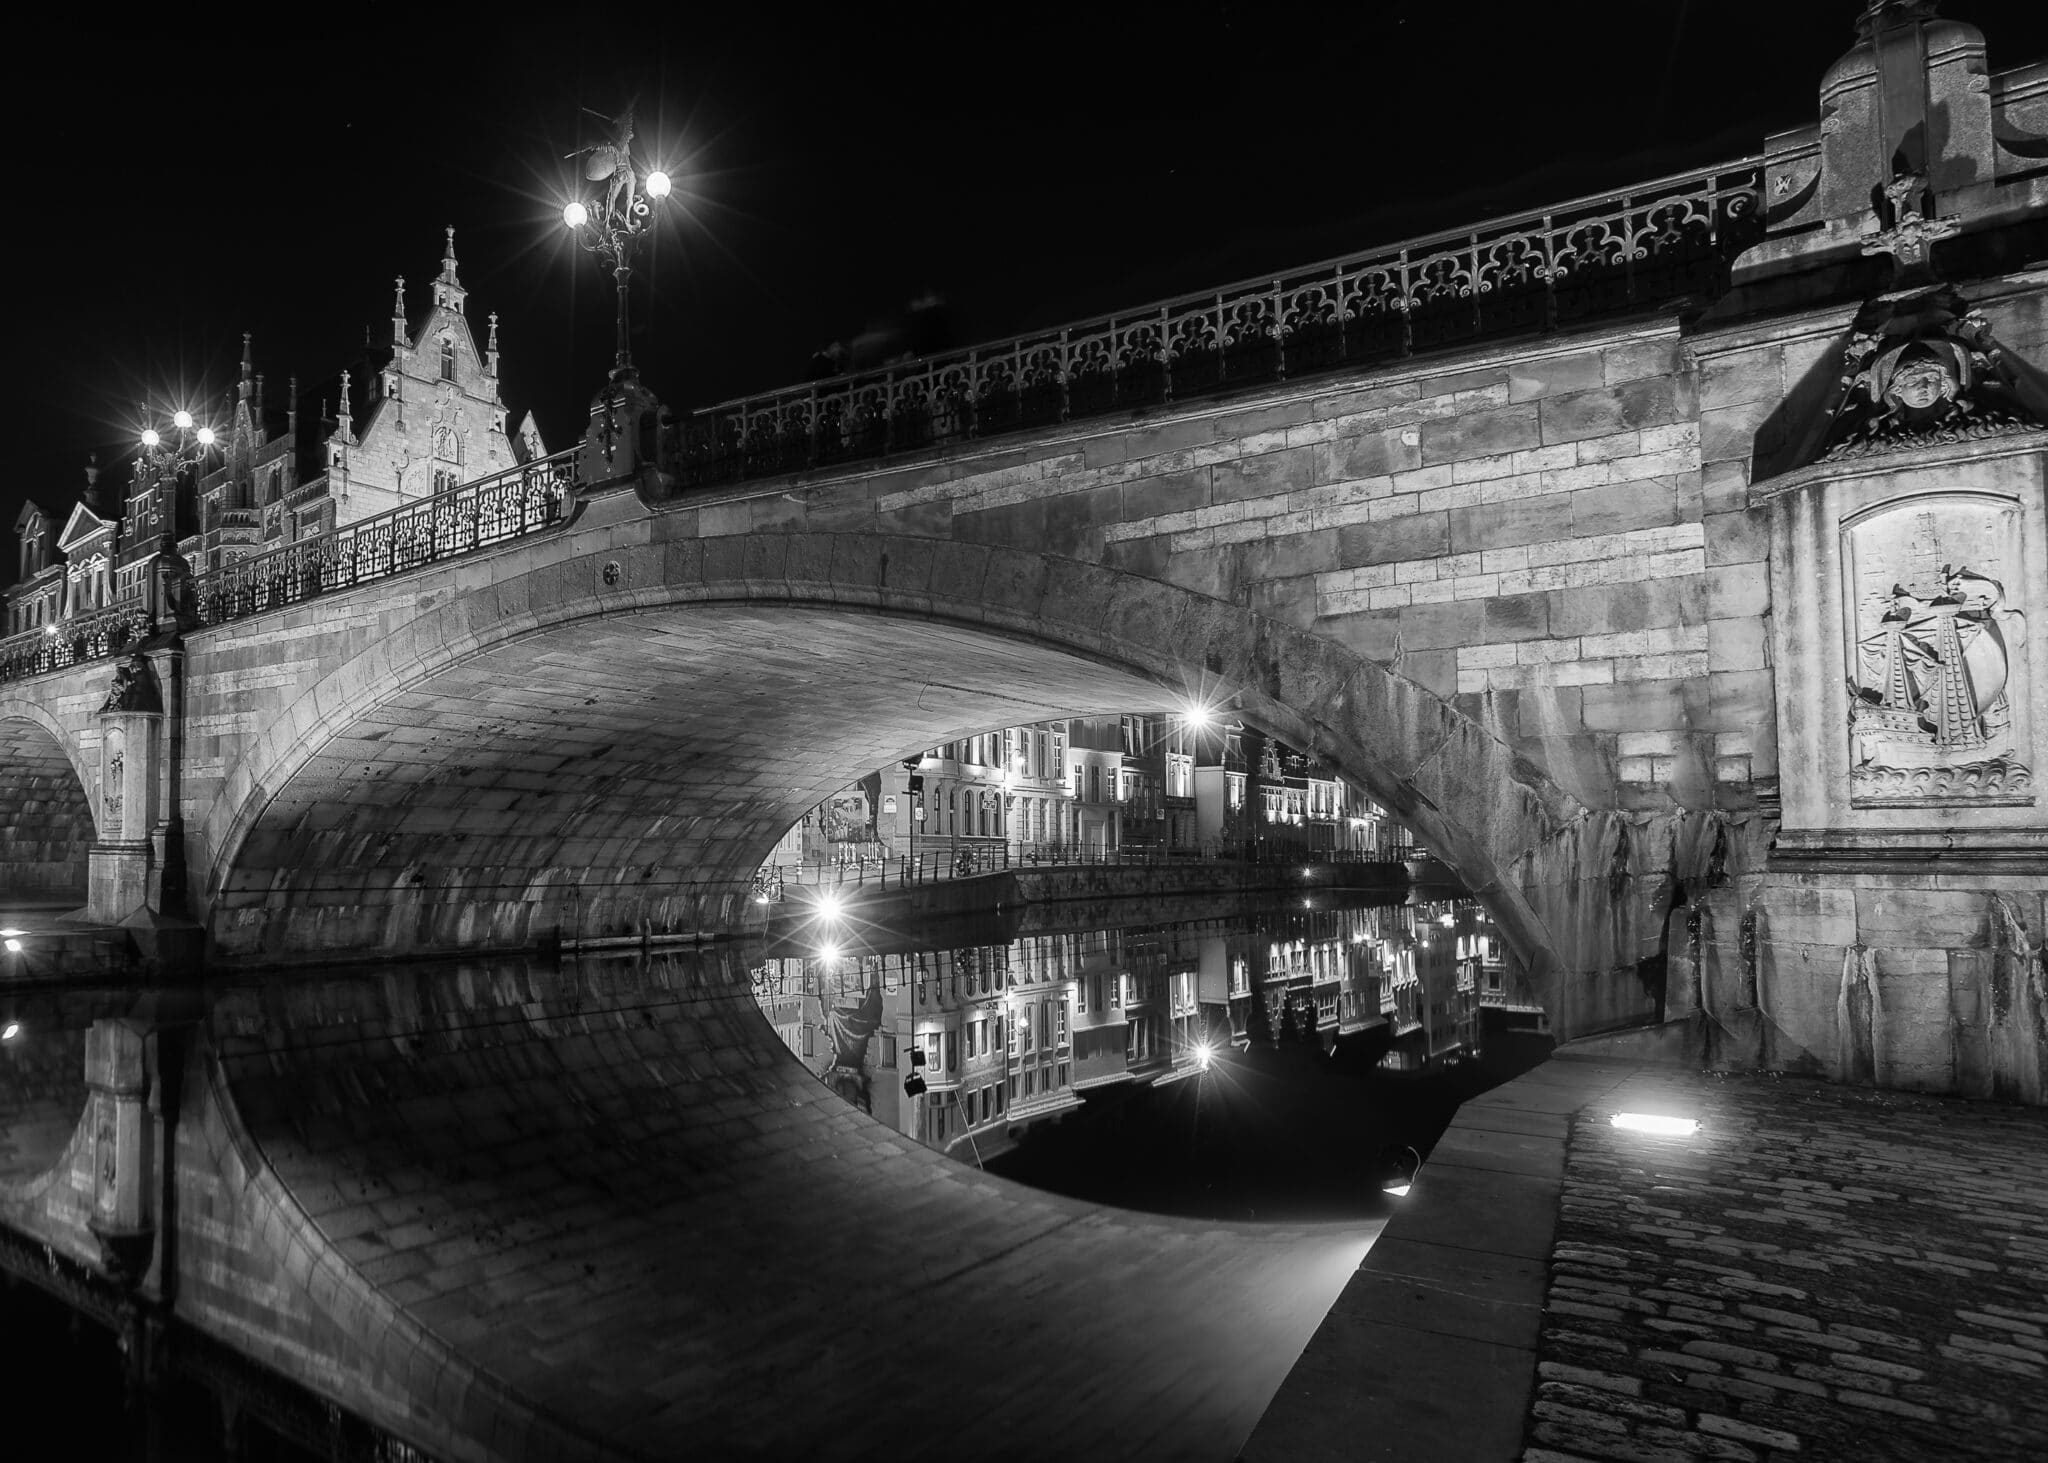 Cityscape - Gent by Night - Saint-Michielsbridge - Fotografie Krist